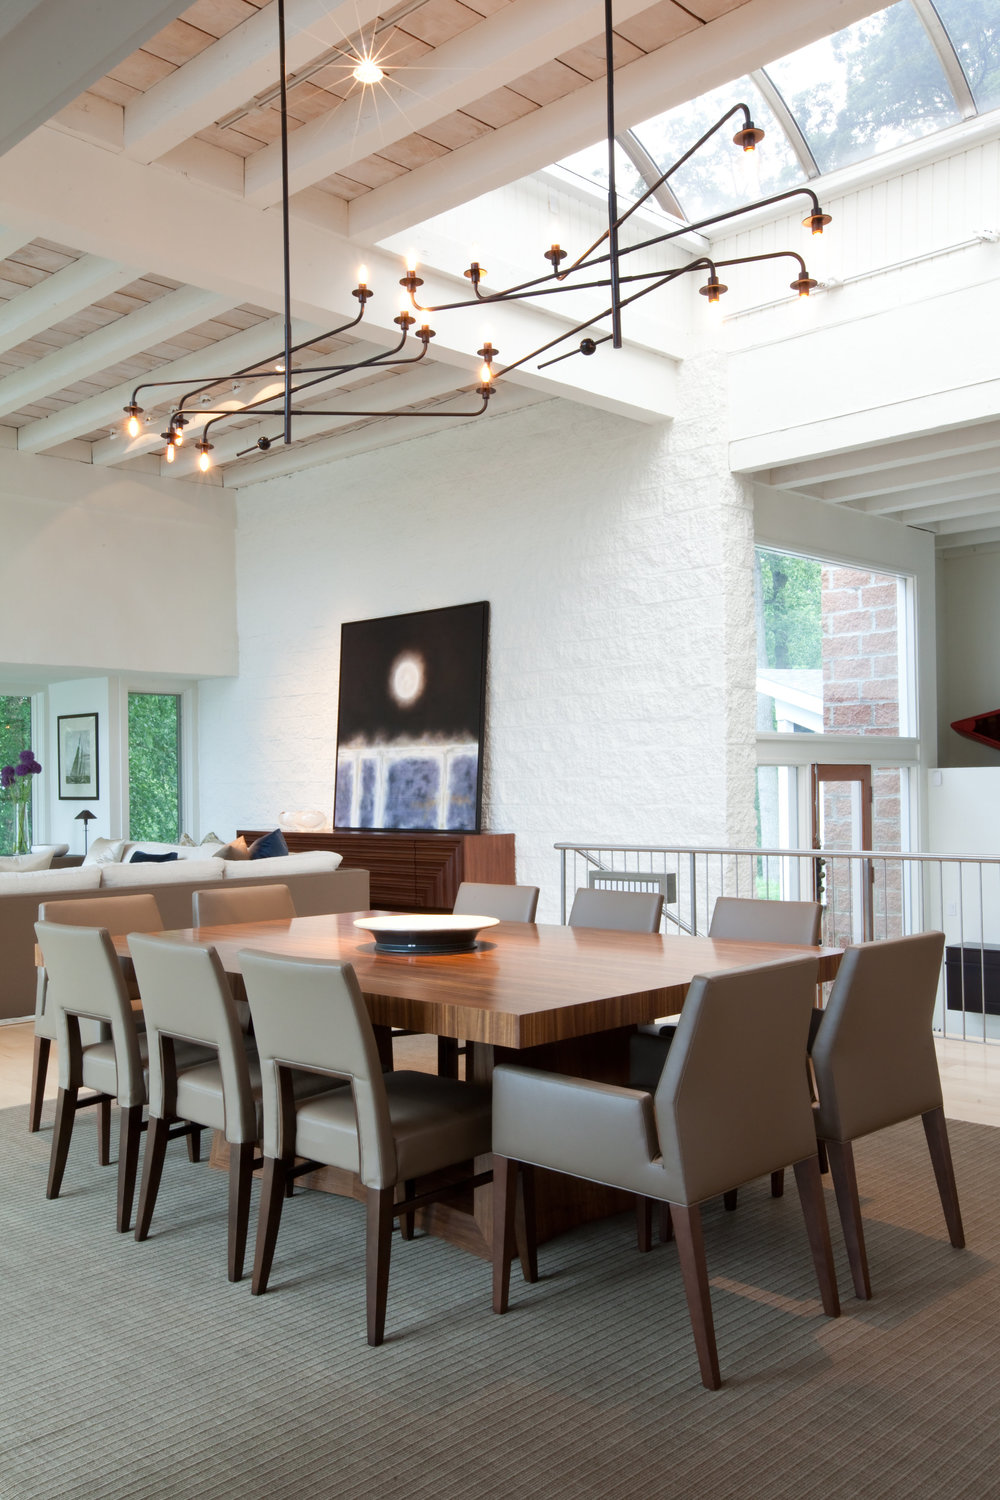 Michelle+Miller+Interiors-Annapolis+Residence+II-0209+-+Dining+Room.jpg